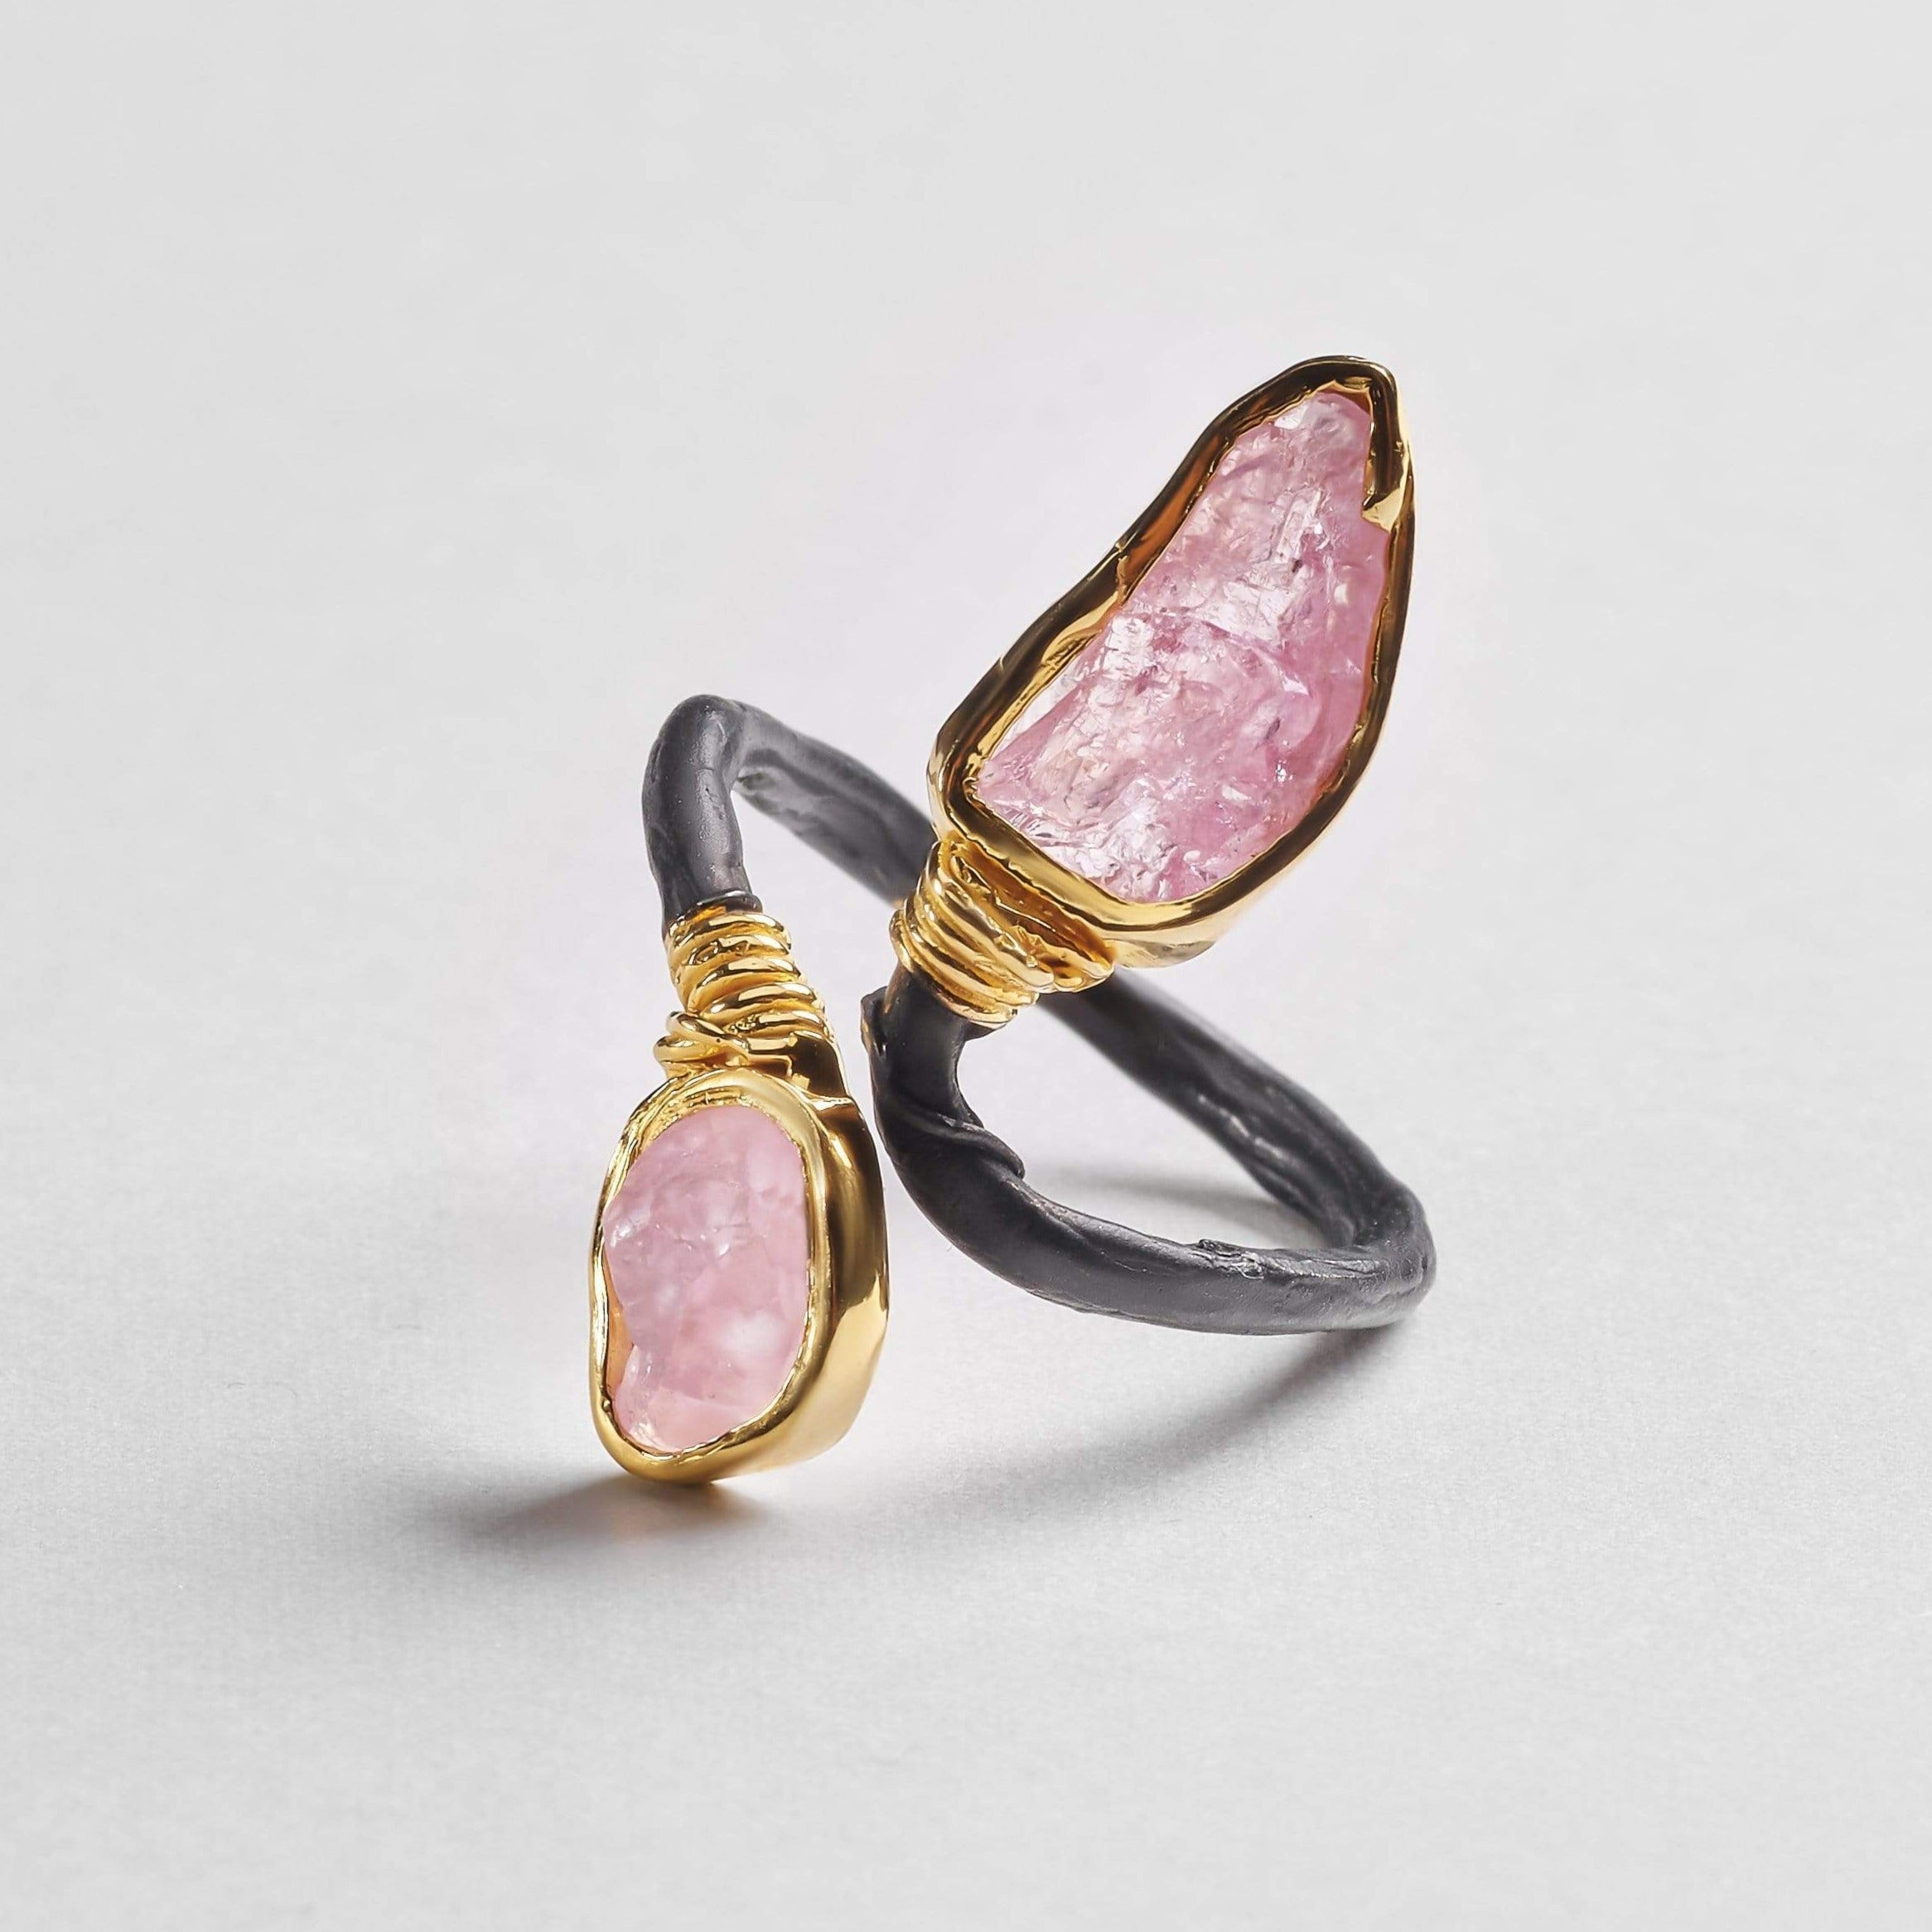 Airlia Pure Ring, Anthracite, black, Gold, Handmade, Spinel, spo-disabled, StoneColor:PastelColor, StoneColor:Pink, Style:Delicate, Type:BlackAnthracite, Type:StoneCandyDelicate, Type:StoneCandyOut Ring